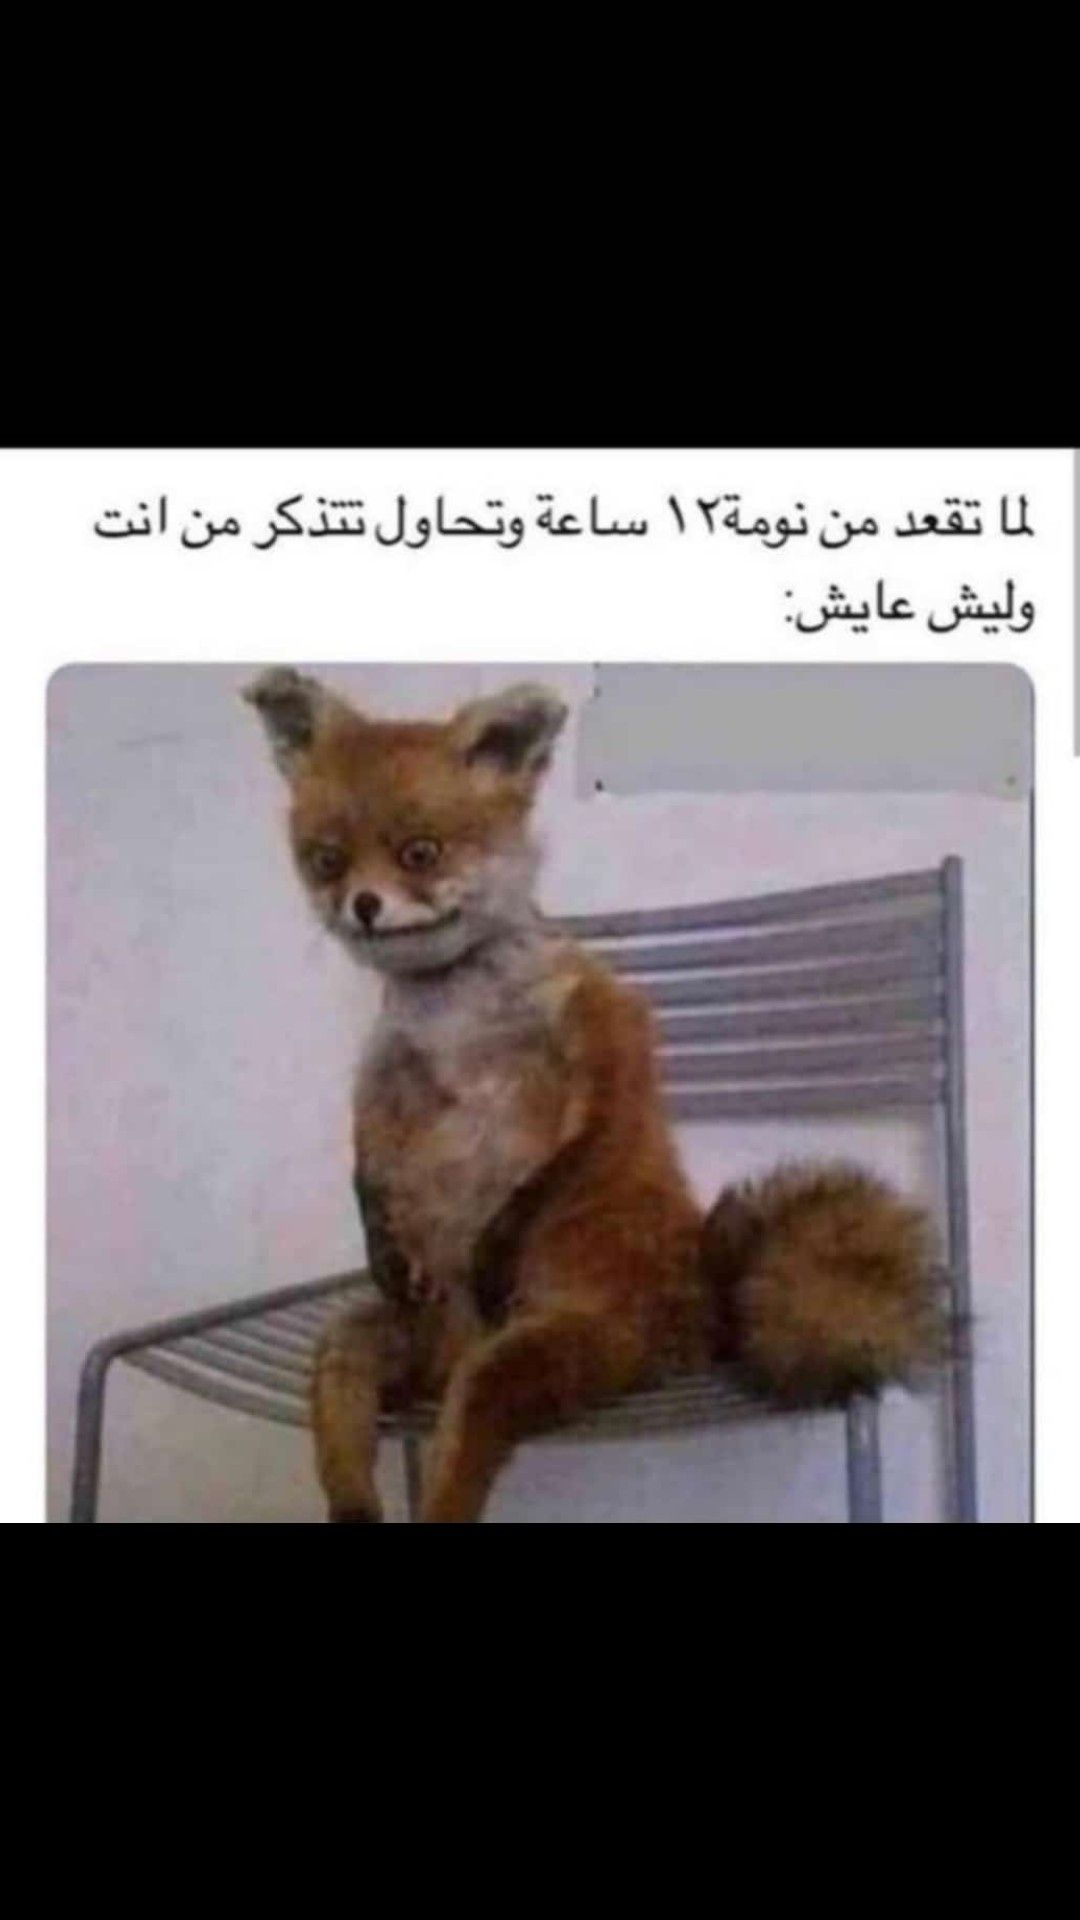 Pin By Abrar On استهبال Dora Funny Funny Picture Jokes Fun Quotes Funny